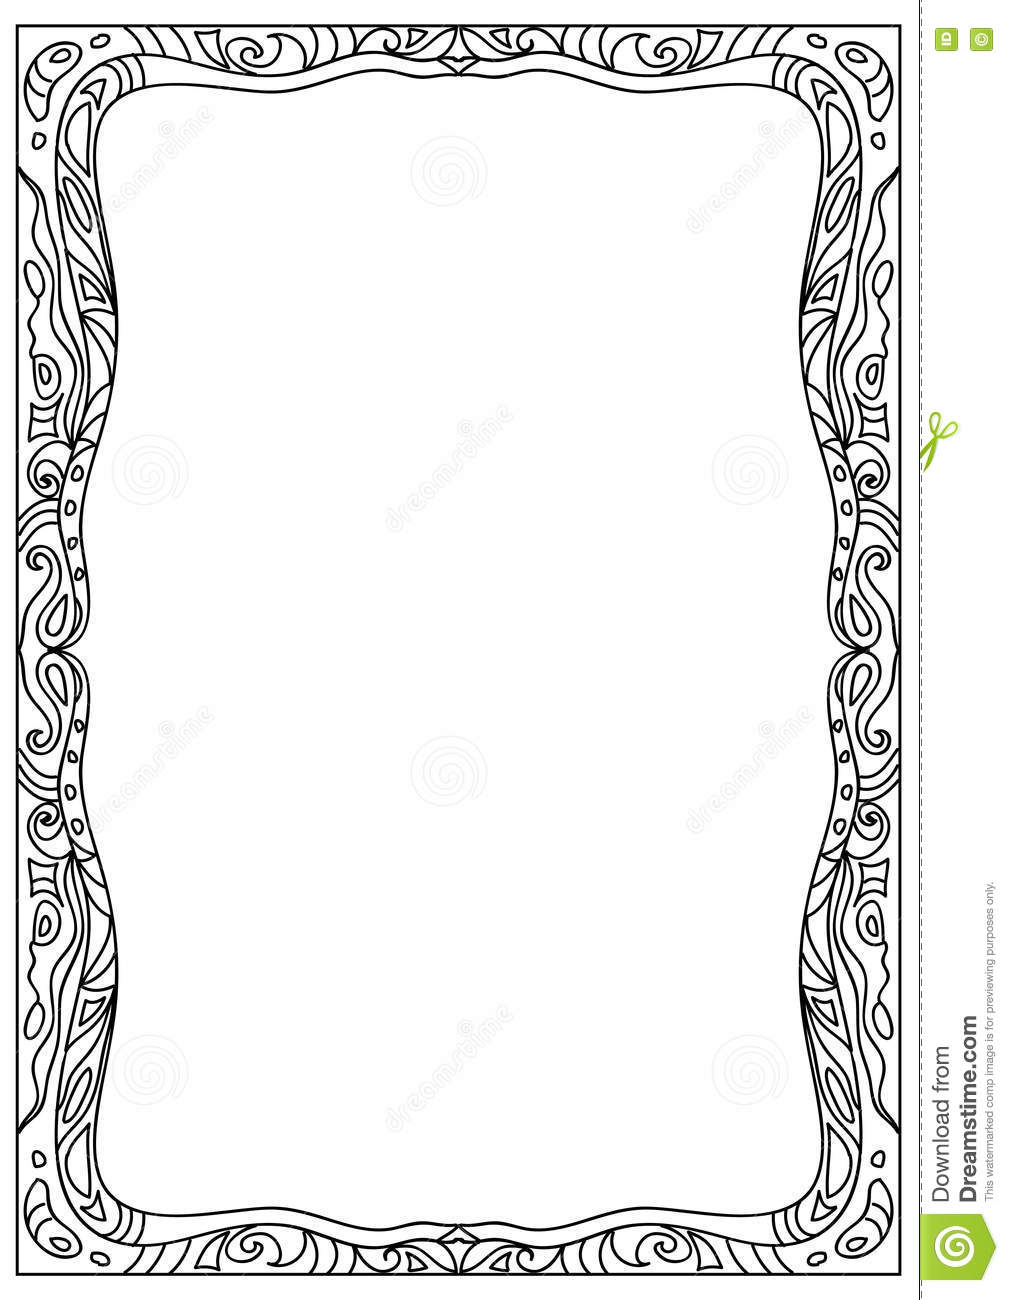 decorative square a4 format coloring page frame isolated on white